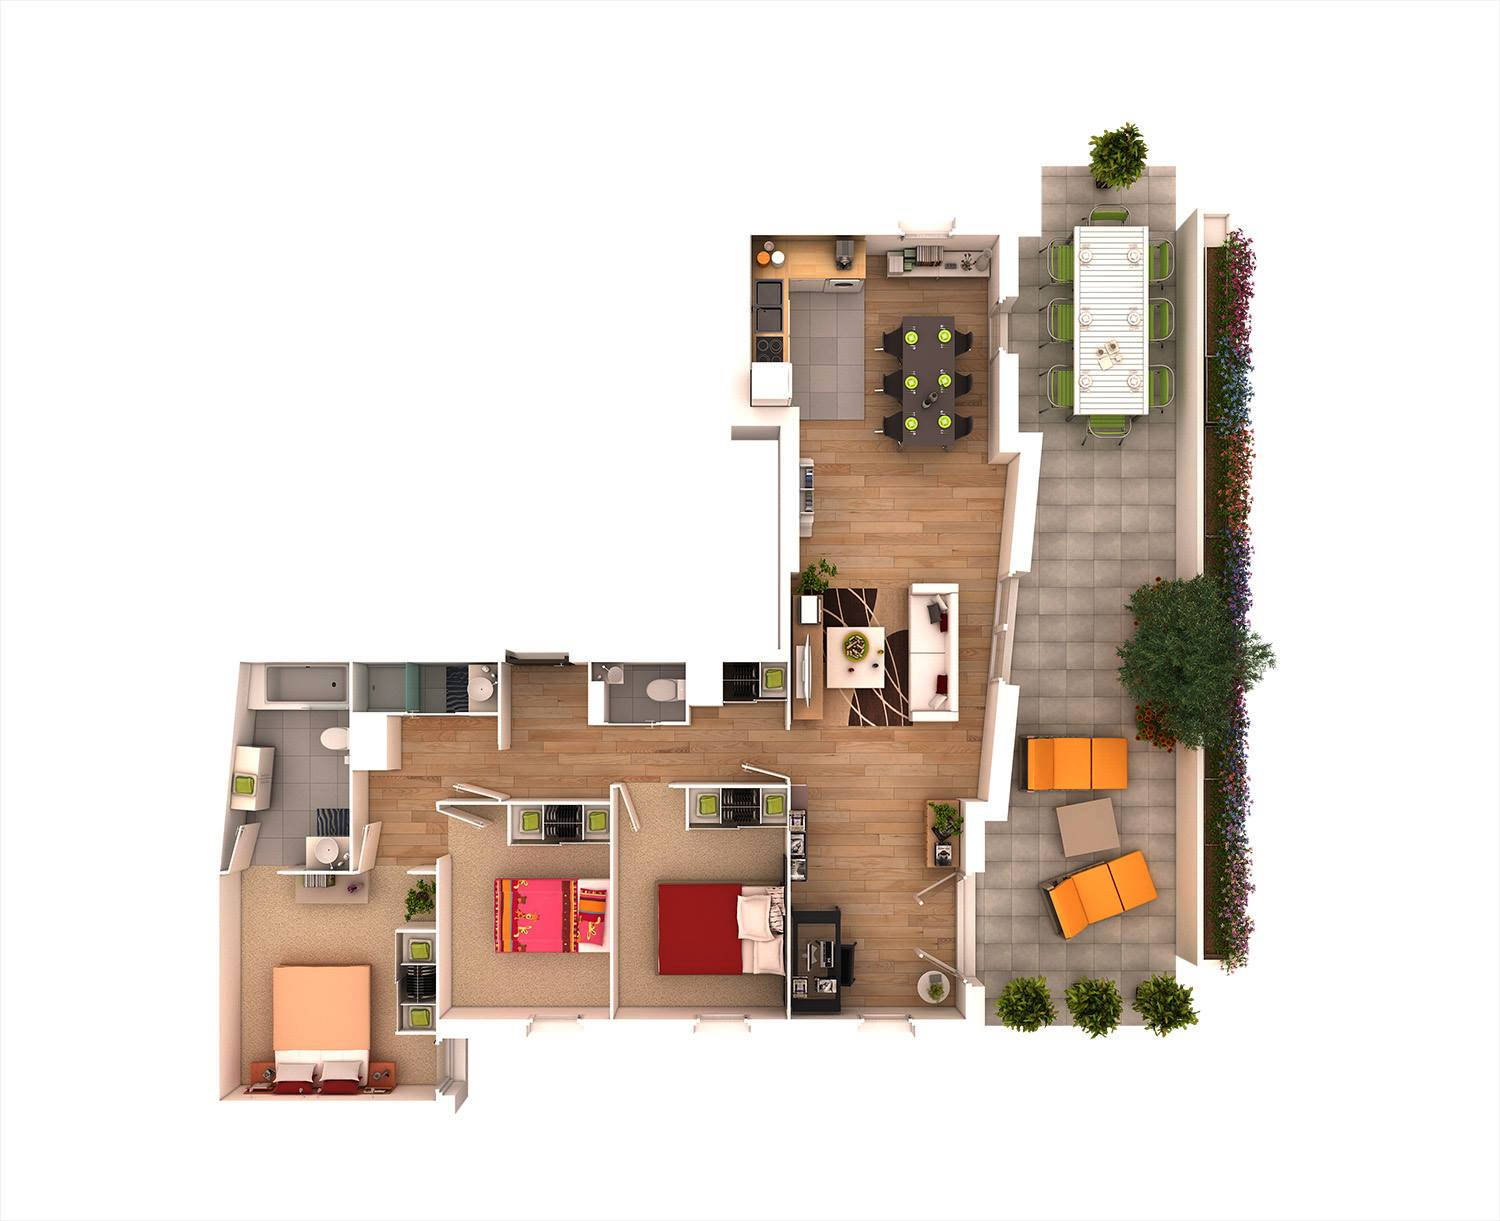 3 Bedroom House Floor Plan 50 three 3 bedroom apartmenthouse plans a well bedroom apartment and jack oconnell 25 More 3 Bedroom 3d Floor Plans